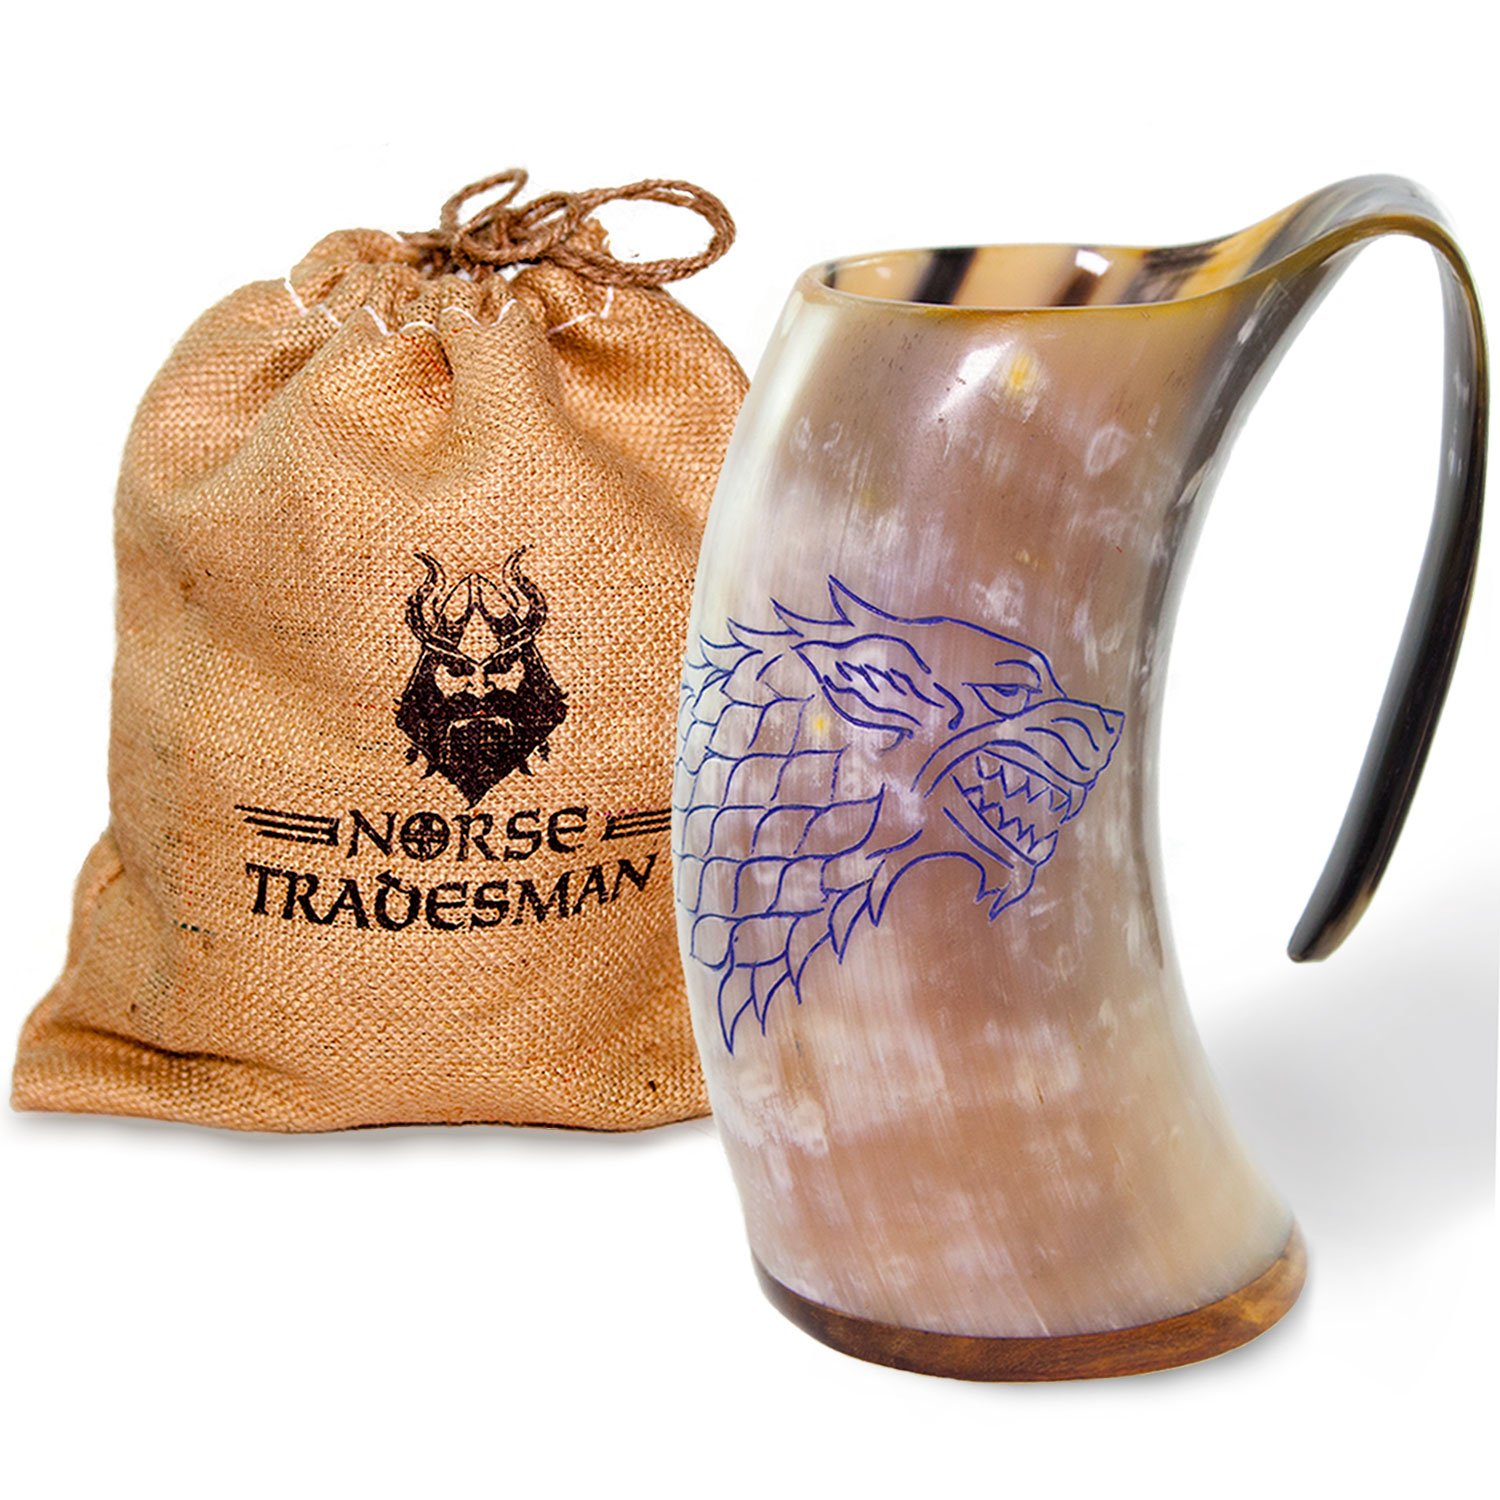 Norse Tradesman Genuine Viking Drinking Horn Mug - 100% Authentic Polished Beer Horn Tankard w/Game of Thrones Direwolf Engraving |''The Fenrir'', Polished, Large